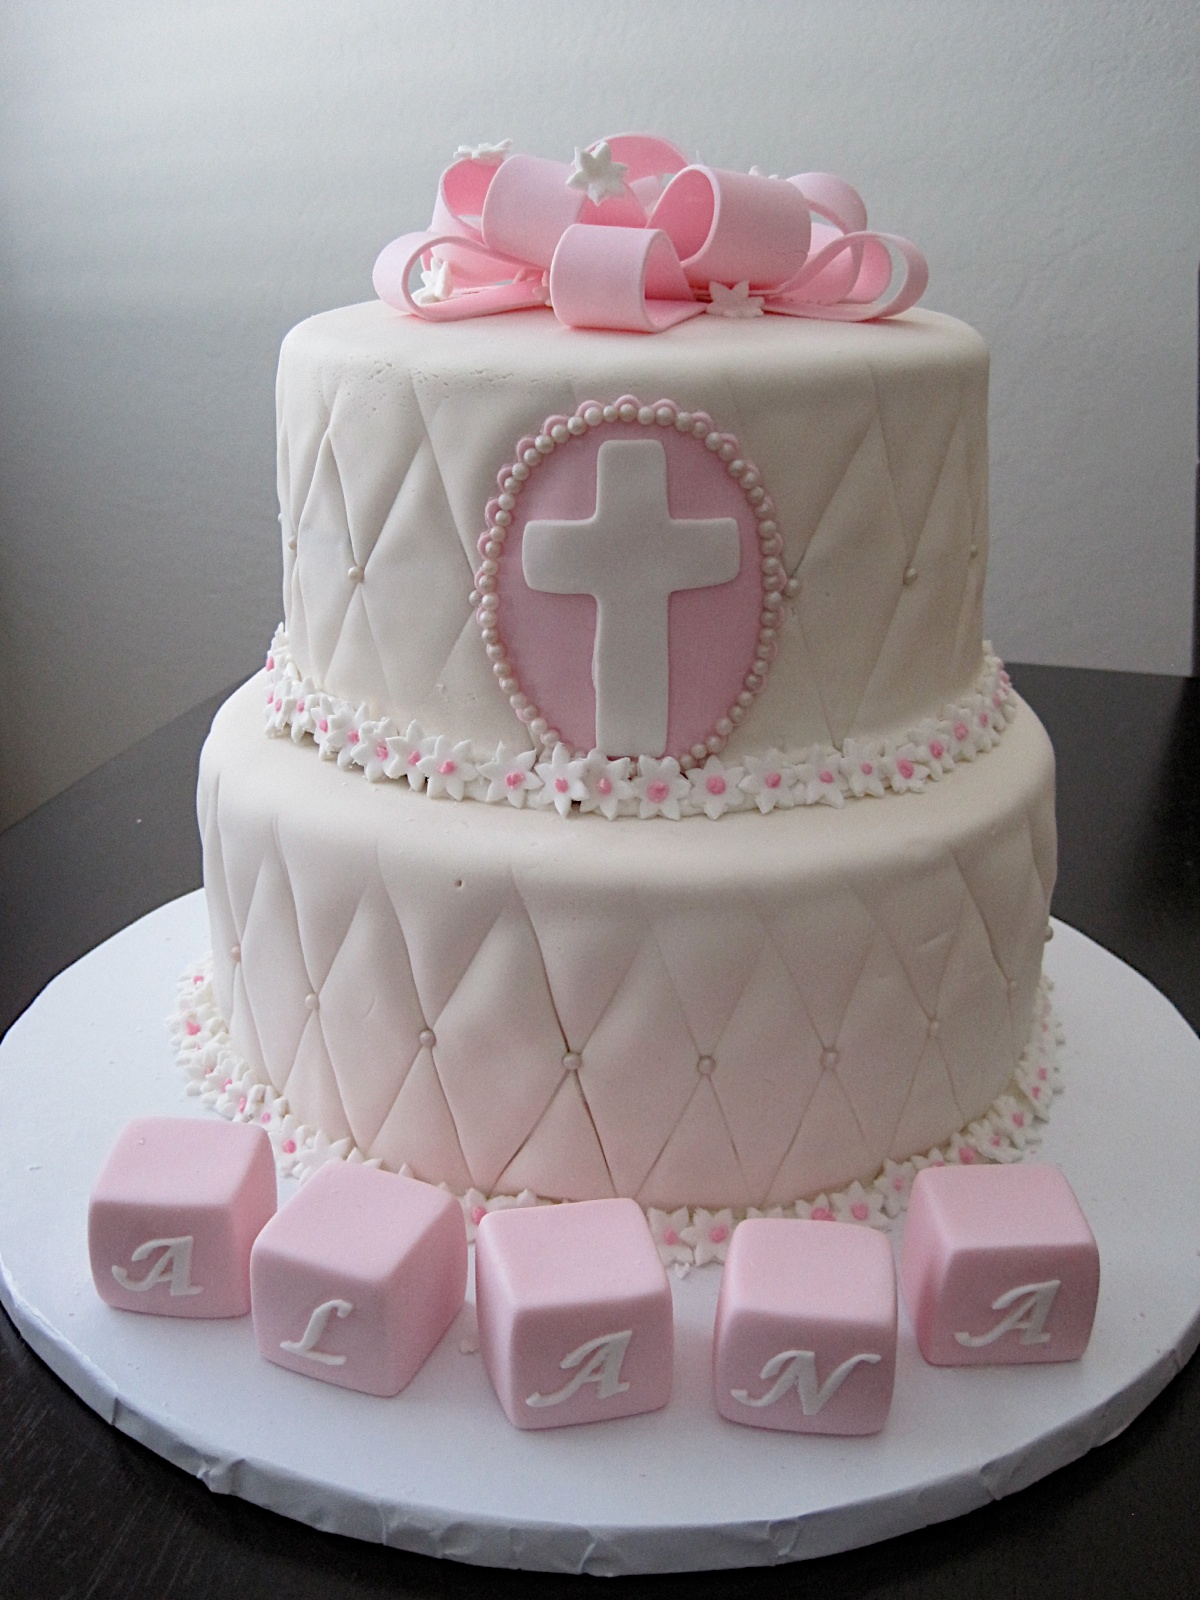 Fondant Cake For Baptism : Baptism Fondant Cake Car Interior Design